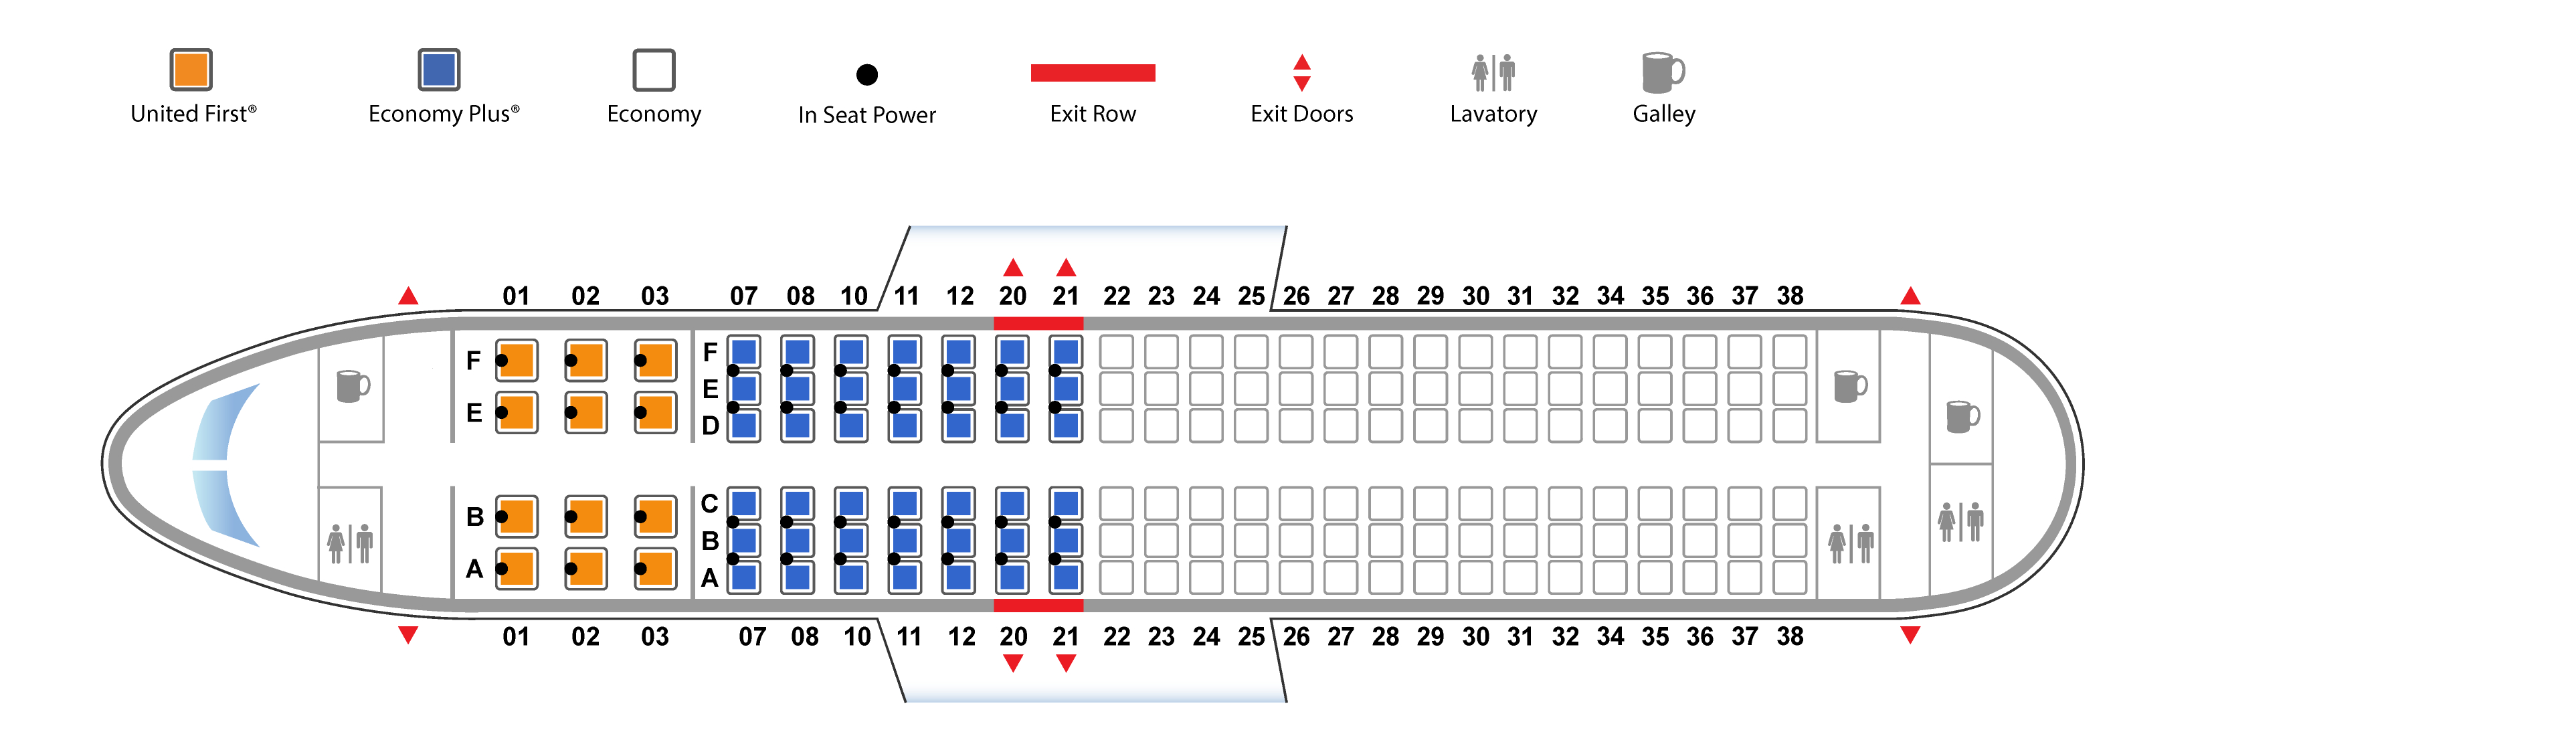 United Airlines Airbus 320 seating